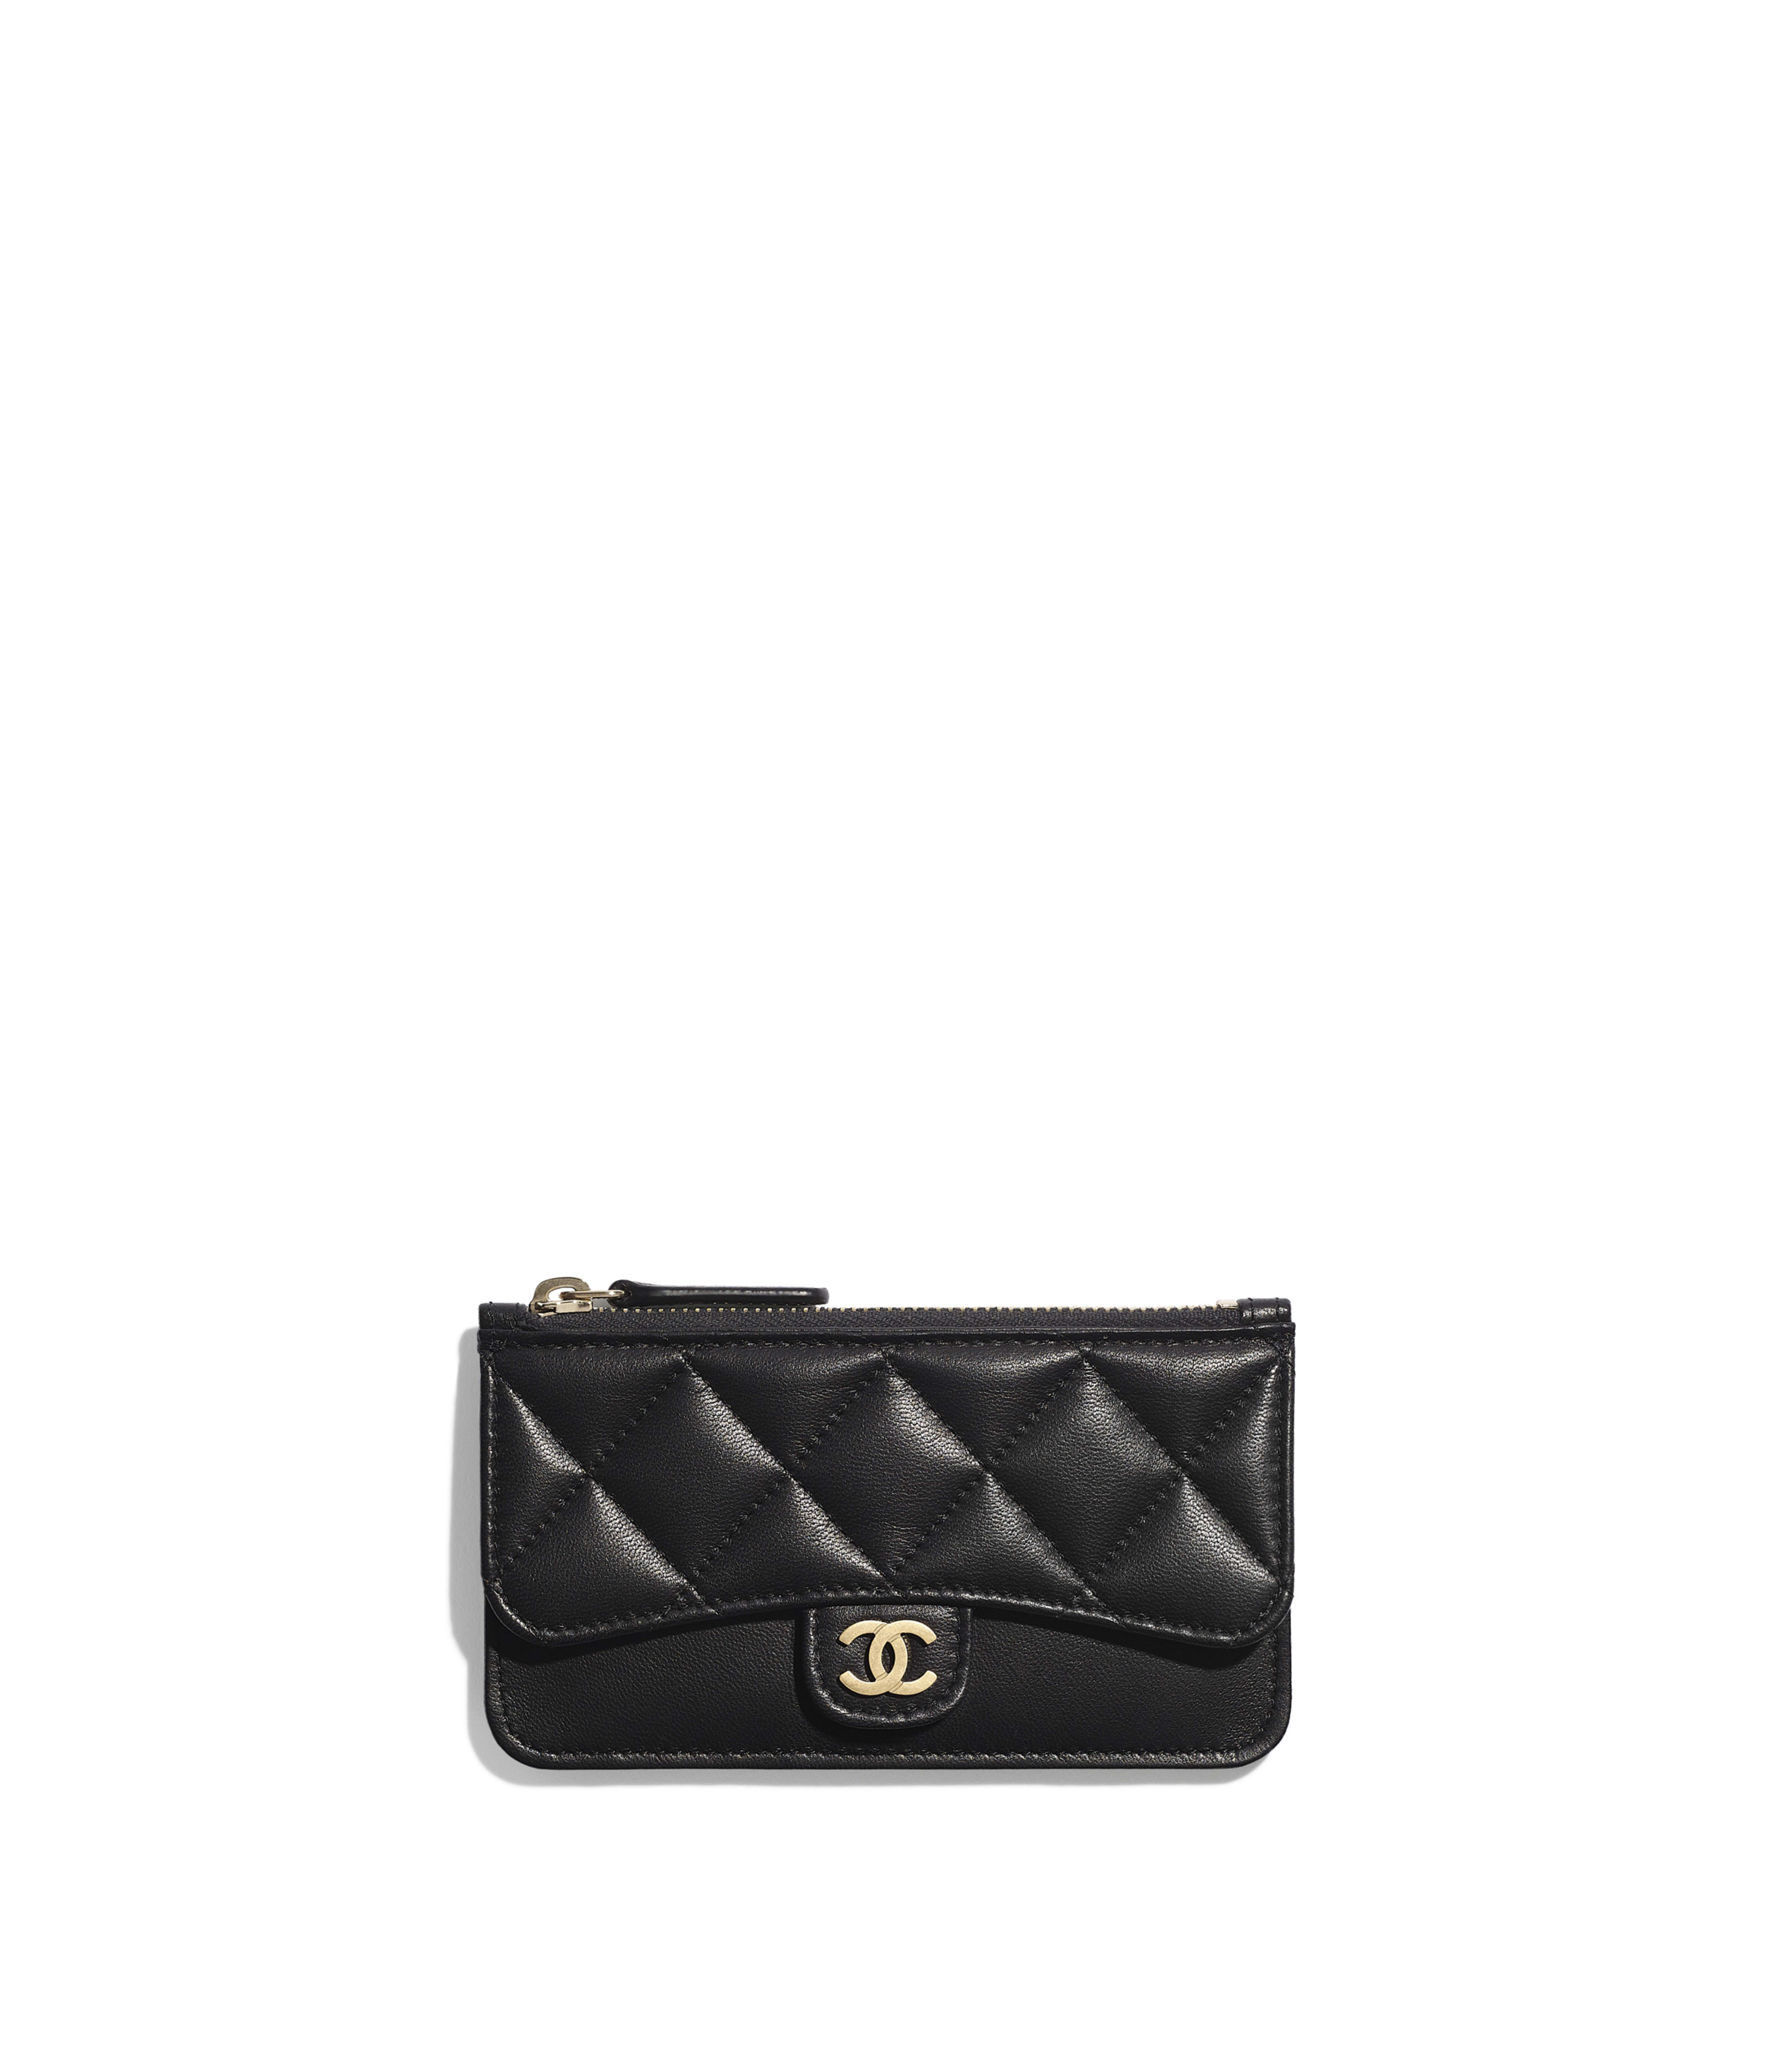 c78395ad9a7036 Classic Card Holder Lambskin & Gold-Tone Metal, Black Ref. AP0374Y07659C3906